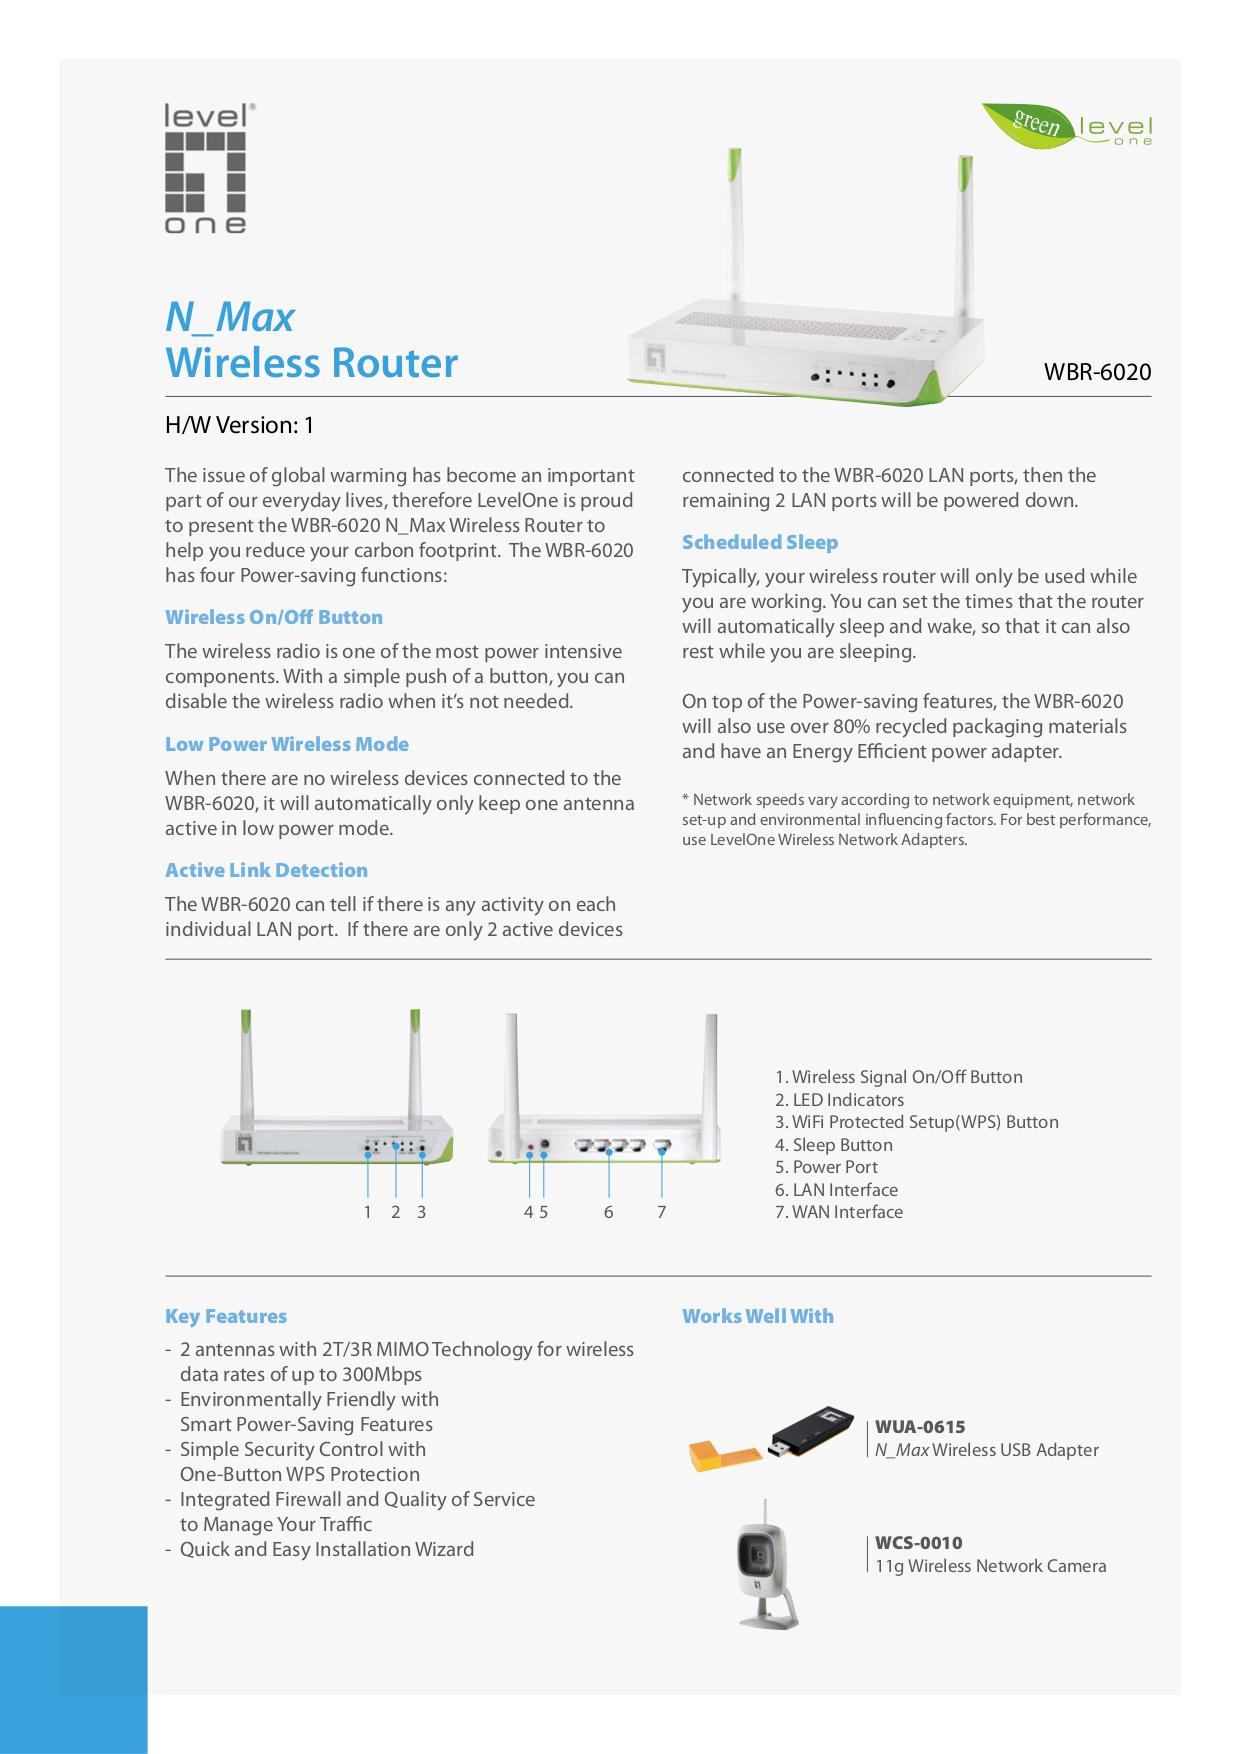 pdf for LevelOne Wireless Router WBR-6020 manual